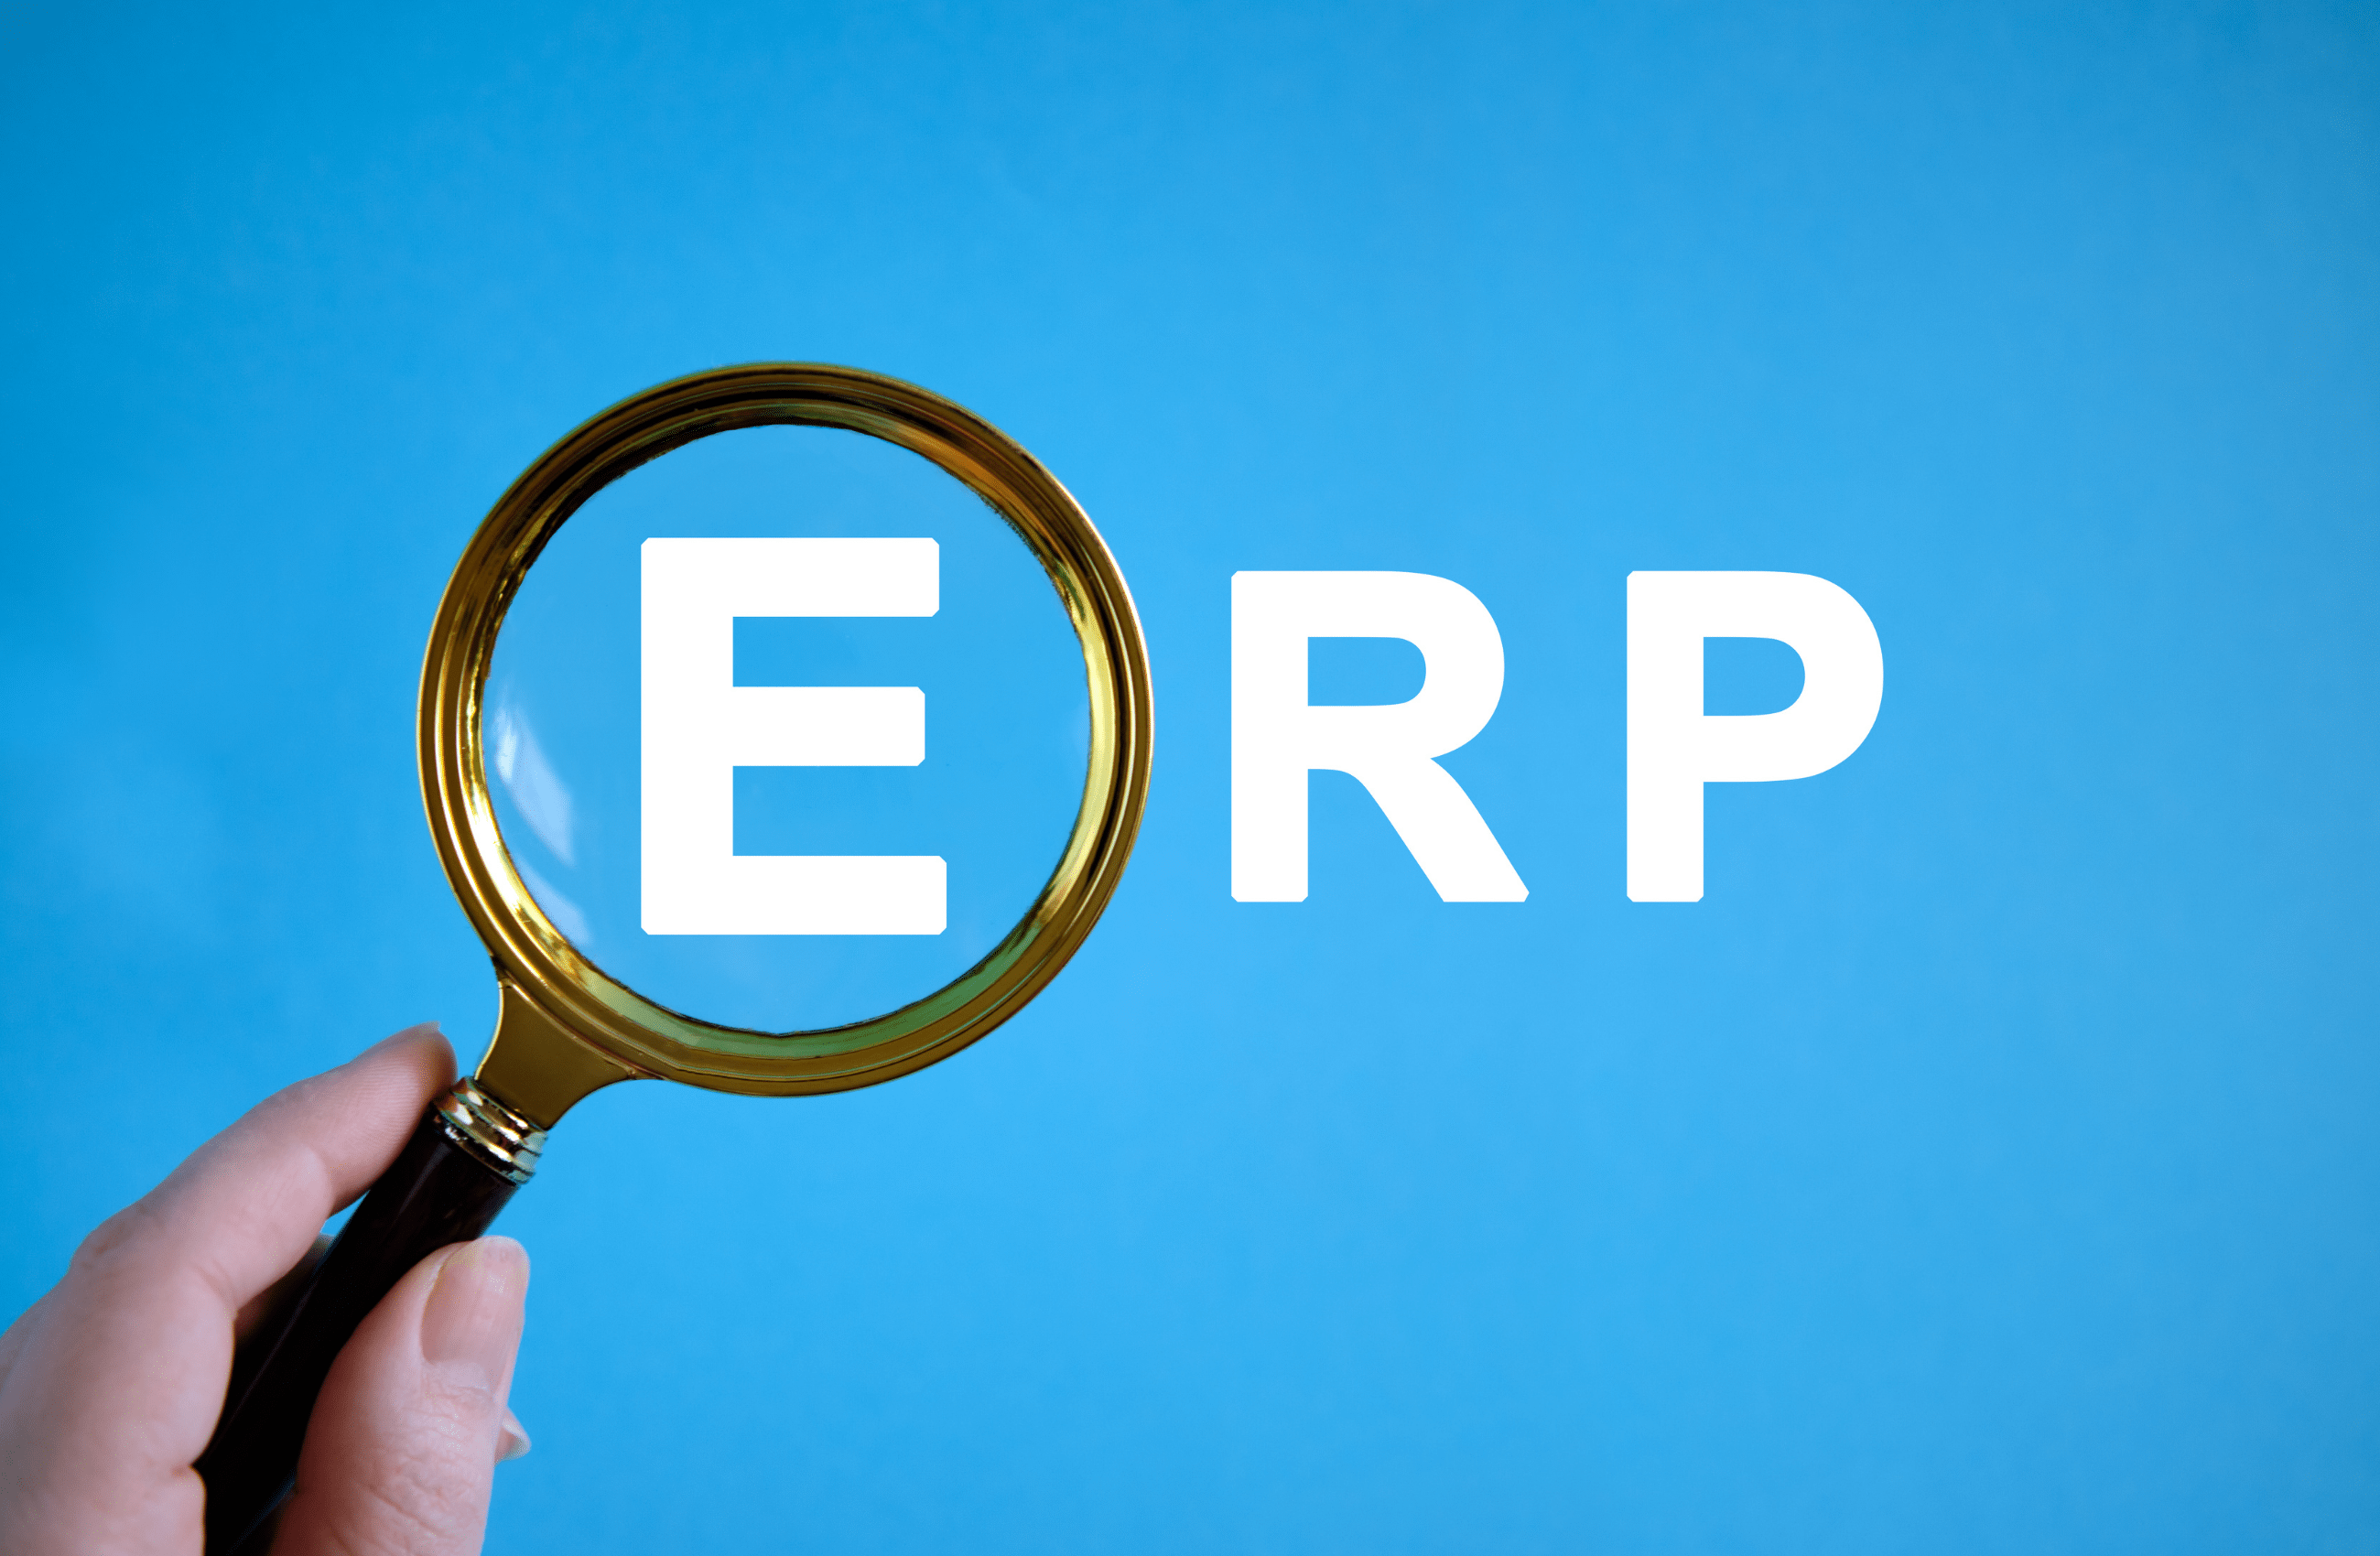 For ERP, It's really not about the cloud!